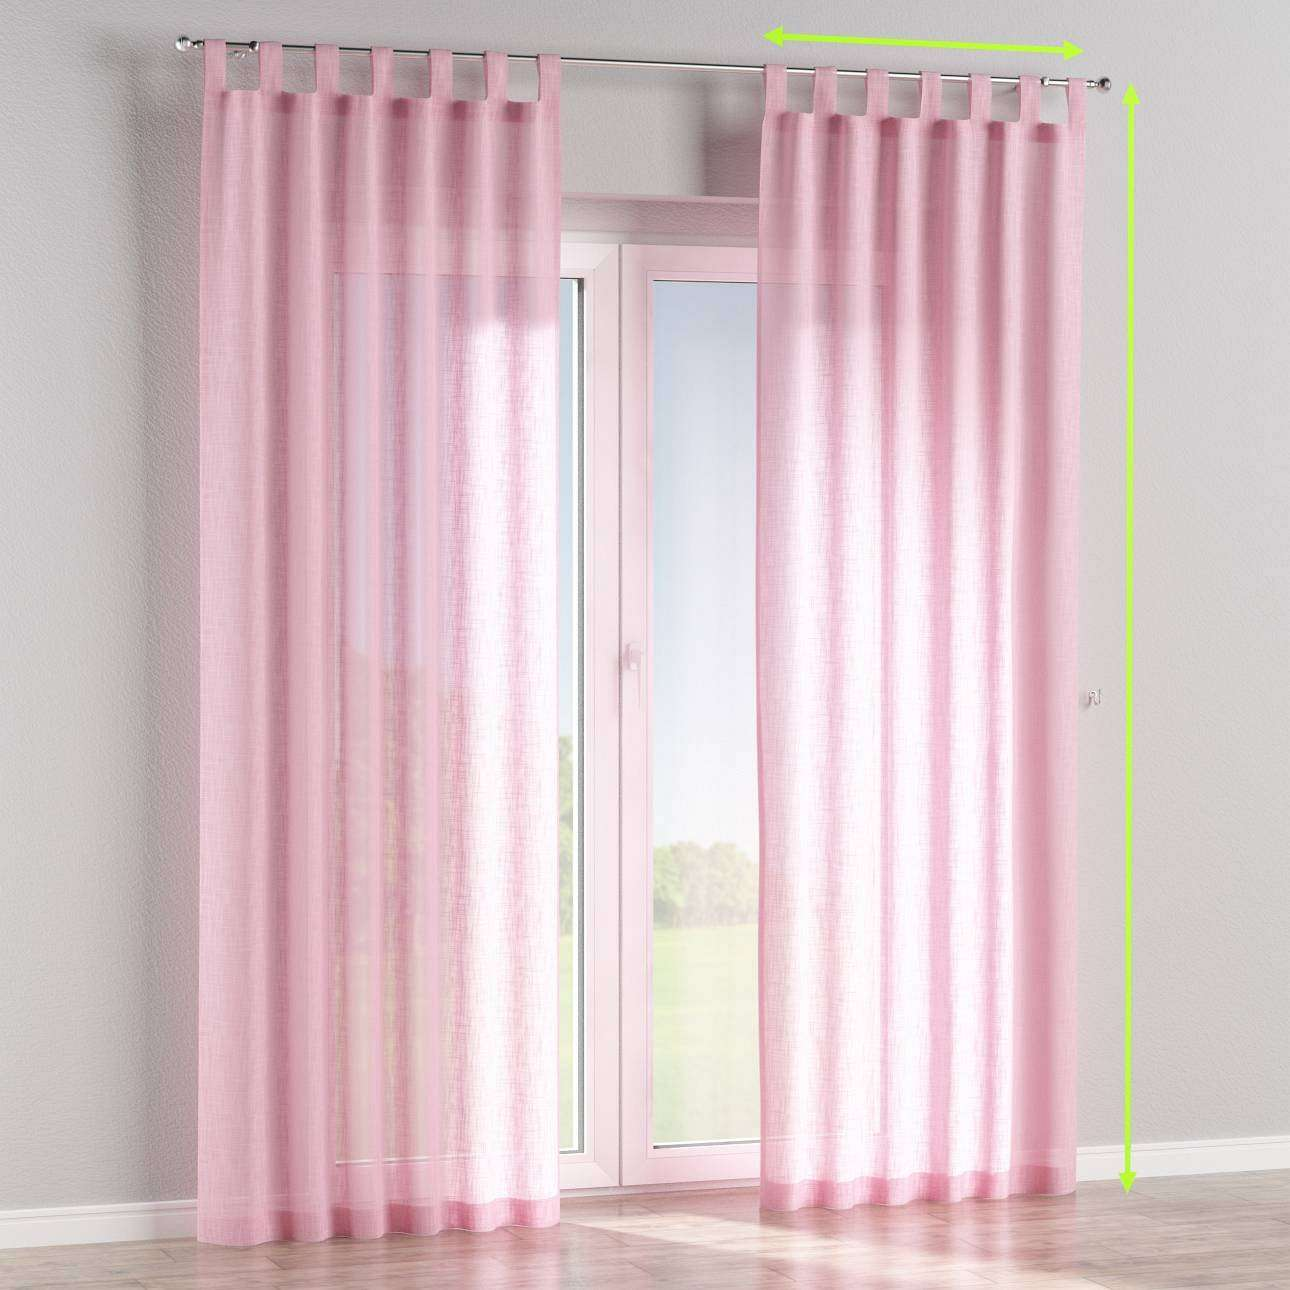 Tab top curtains in collection Romantica, fabric: 128-03